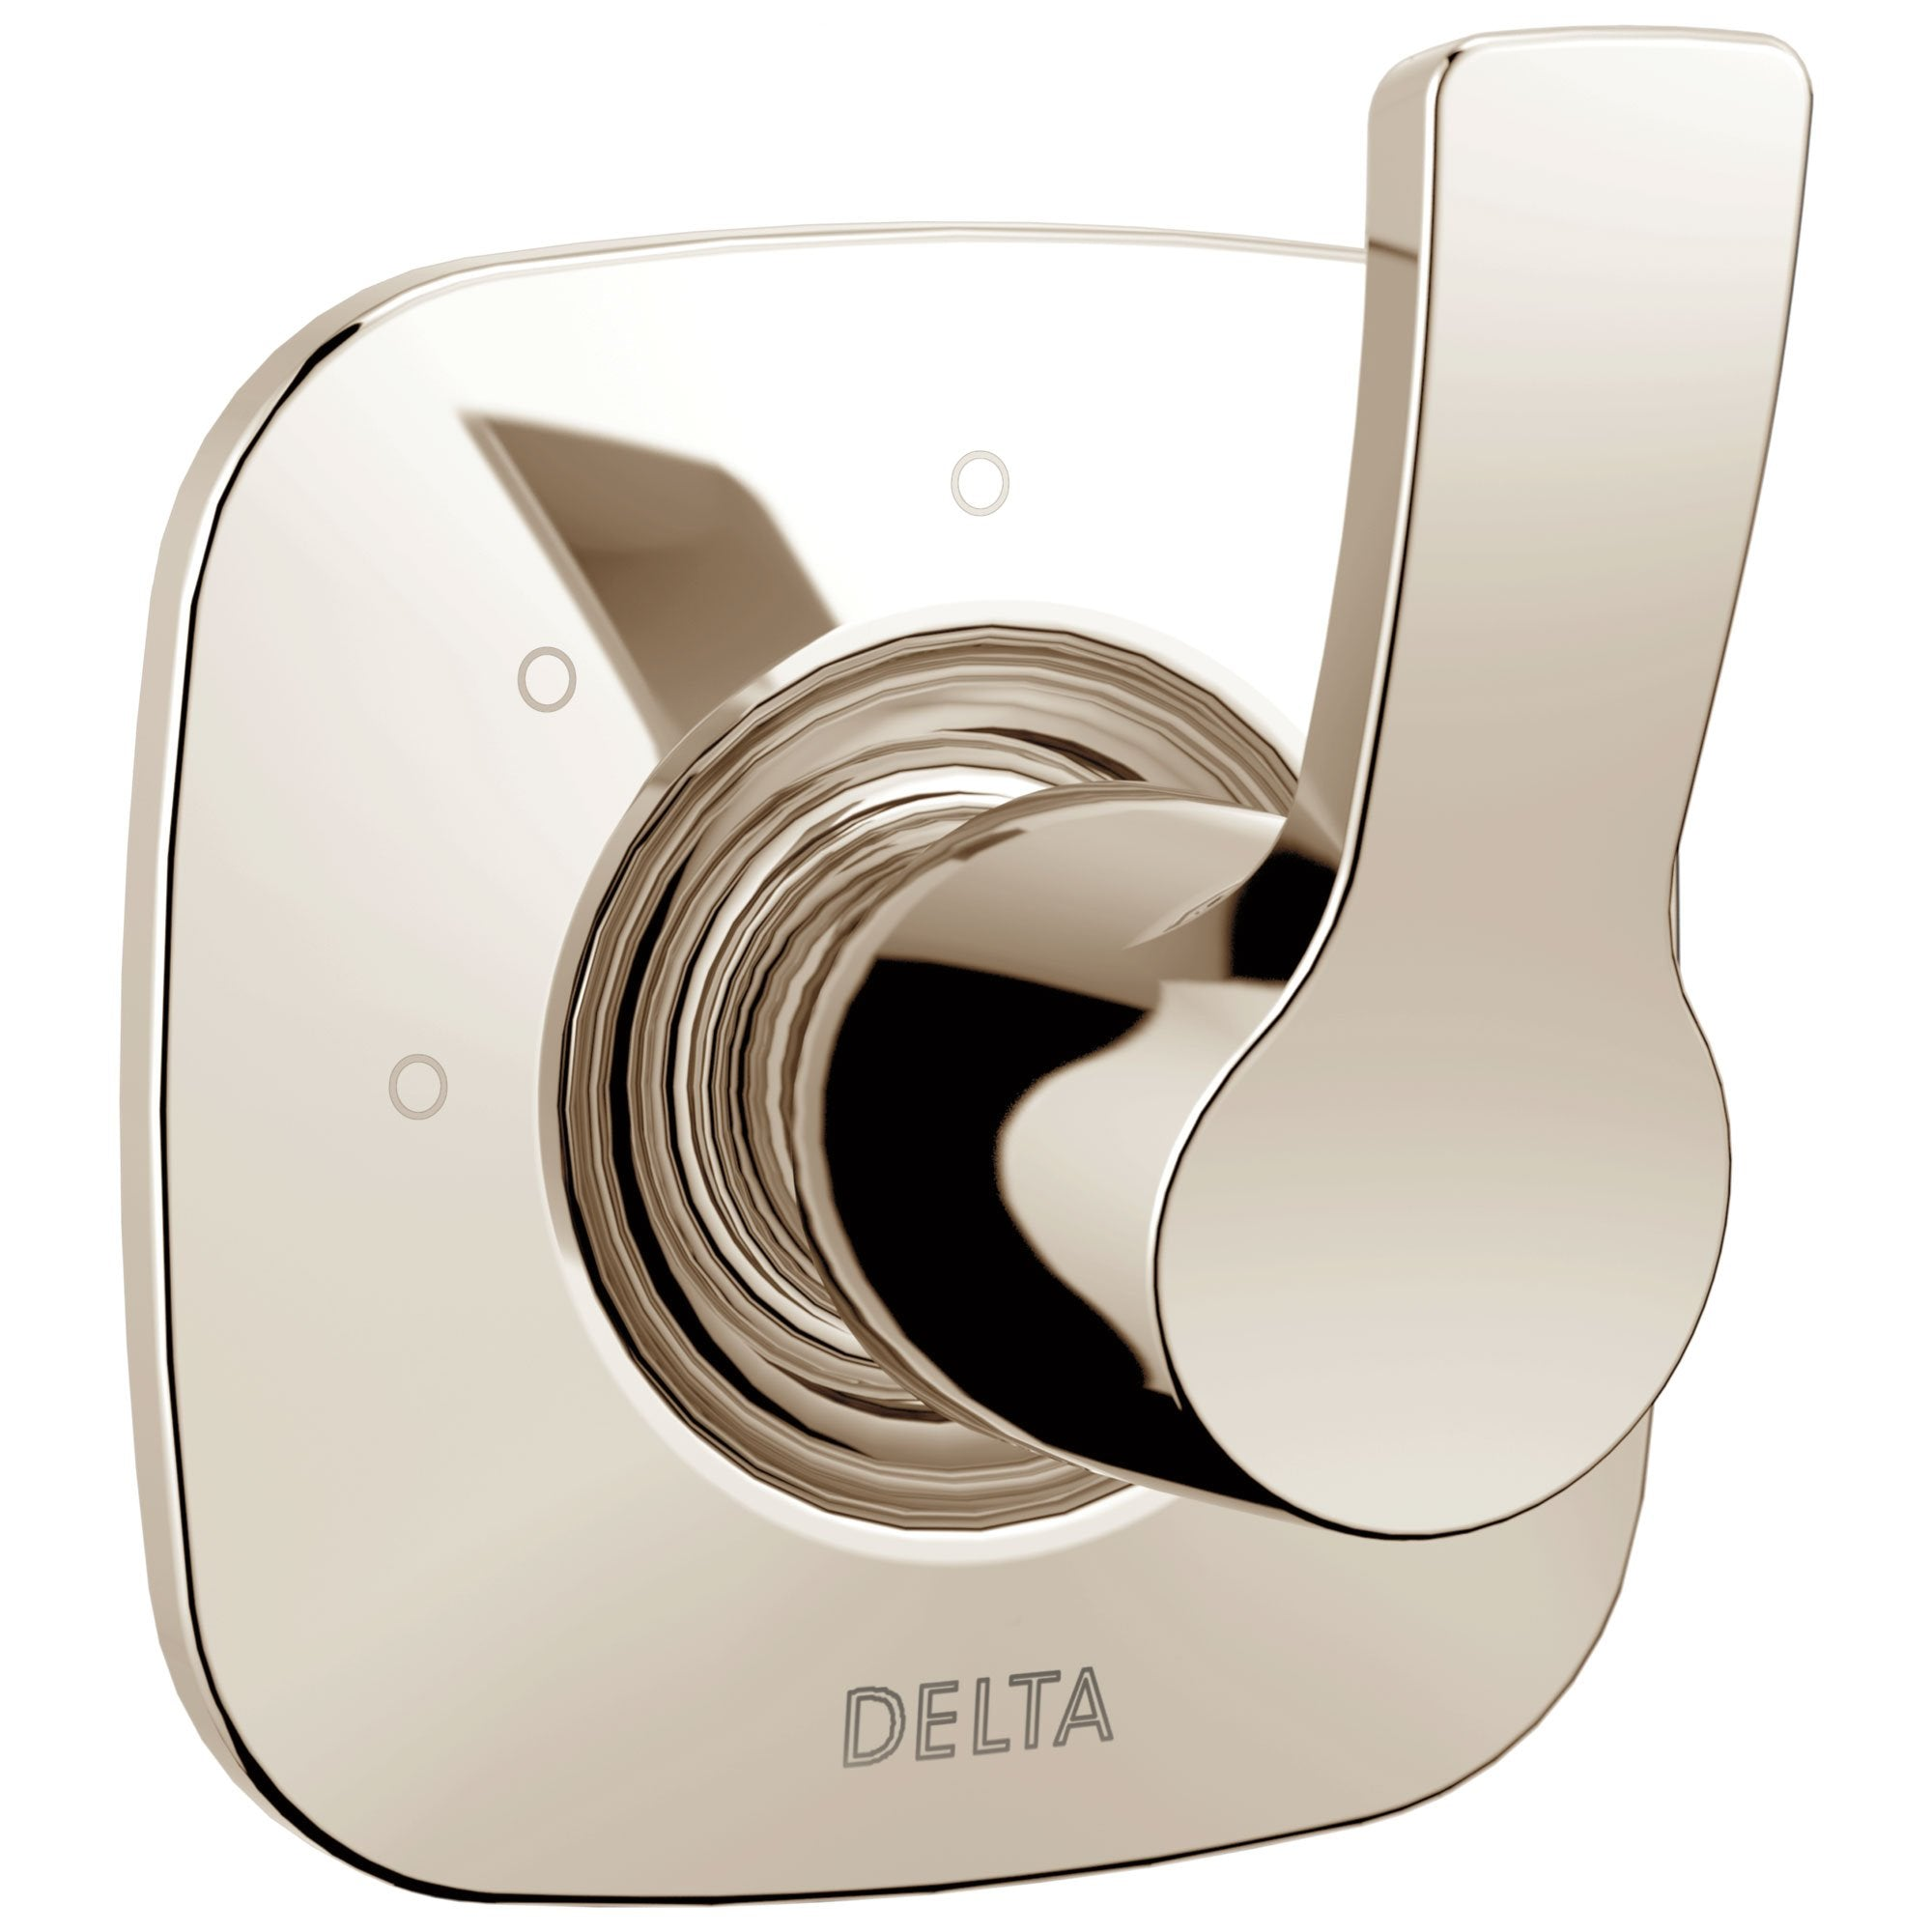 Delta Tesla Collection Polished Nickel Finish Modern 3-Setting 2-Port Single Handle Shower Diverter Includes Rough-in Valve D2060V